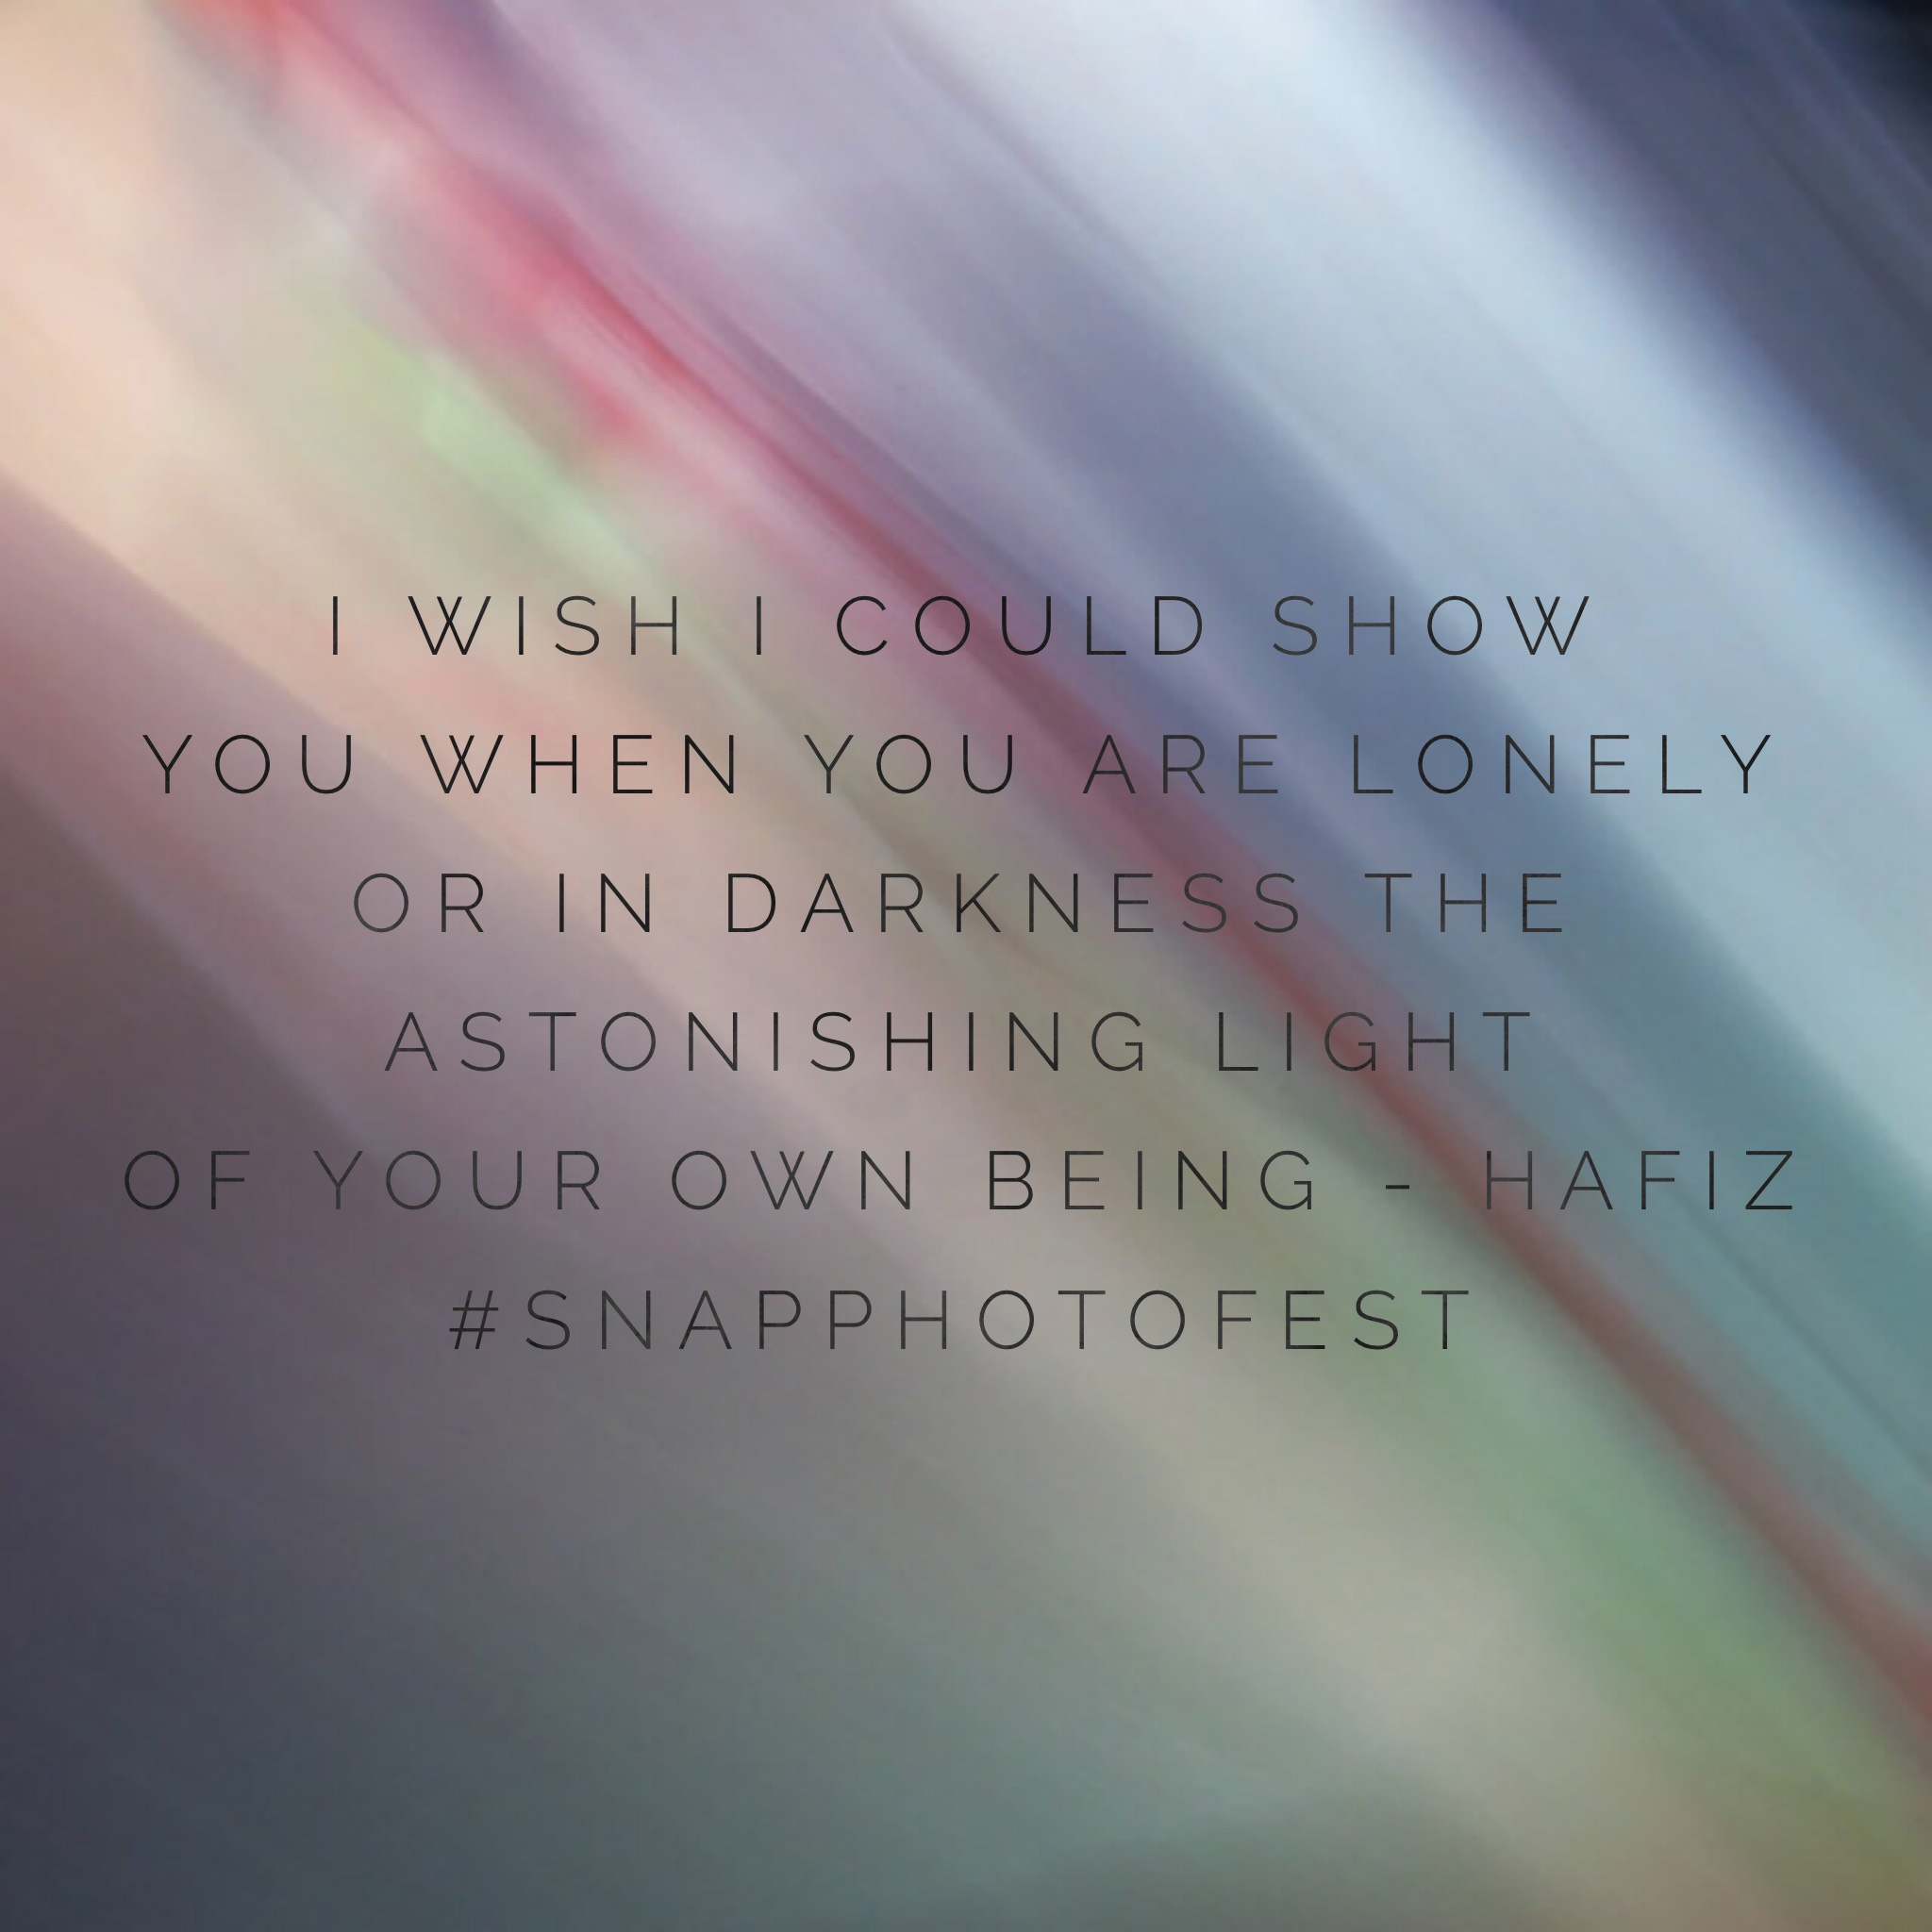 hafiz the astonishing light of your own being quote